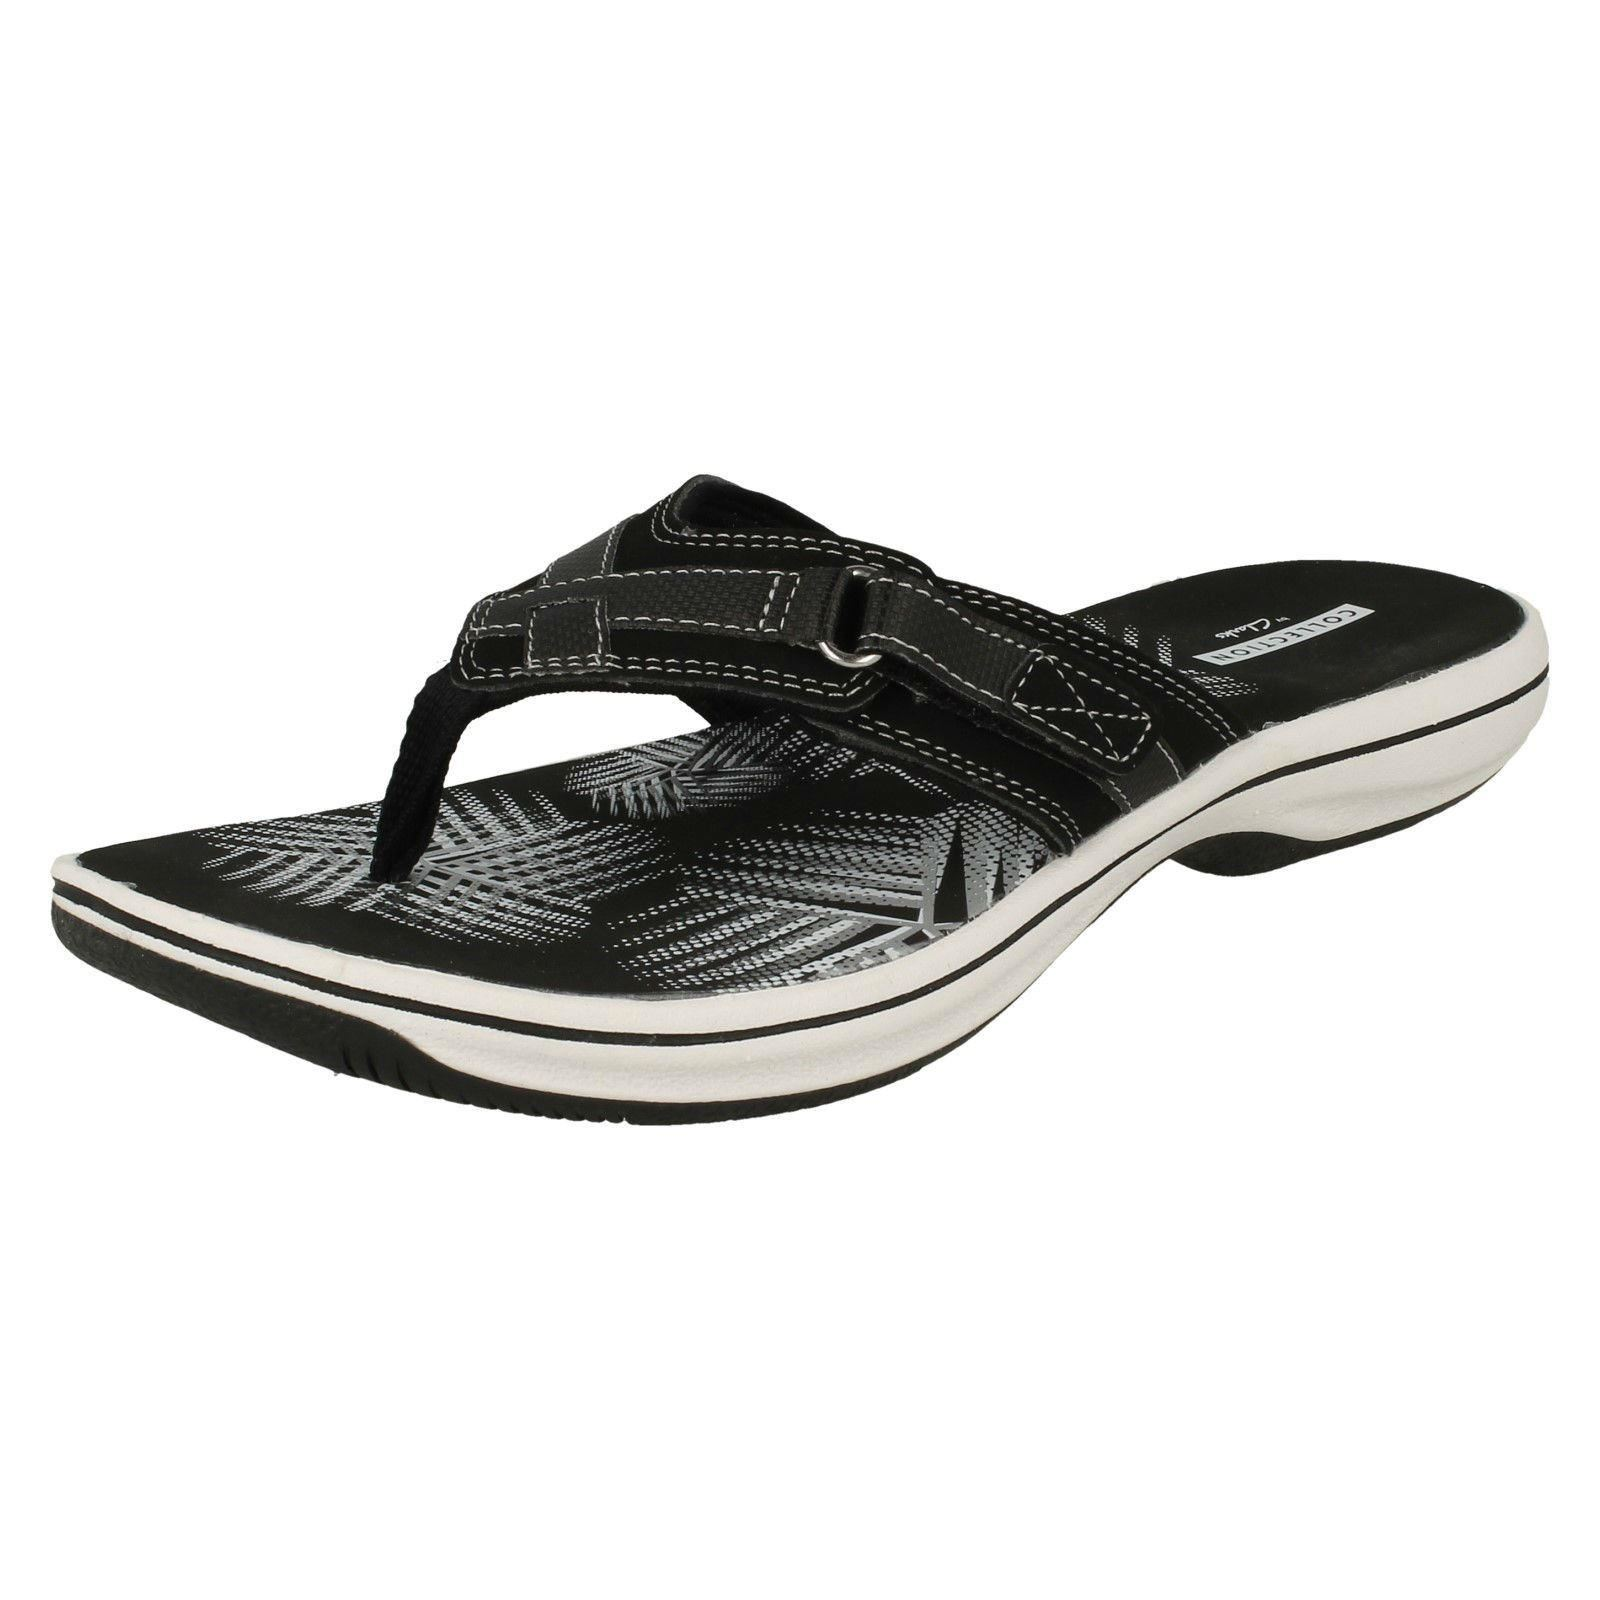 16d9f51c3d6 Ladies Clarks Toe Post Sandal Brinkley Sea UK 7 Black. About this product.  Picture 1 of 10  Picture 2 of 10 ...